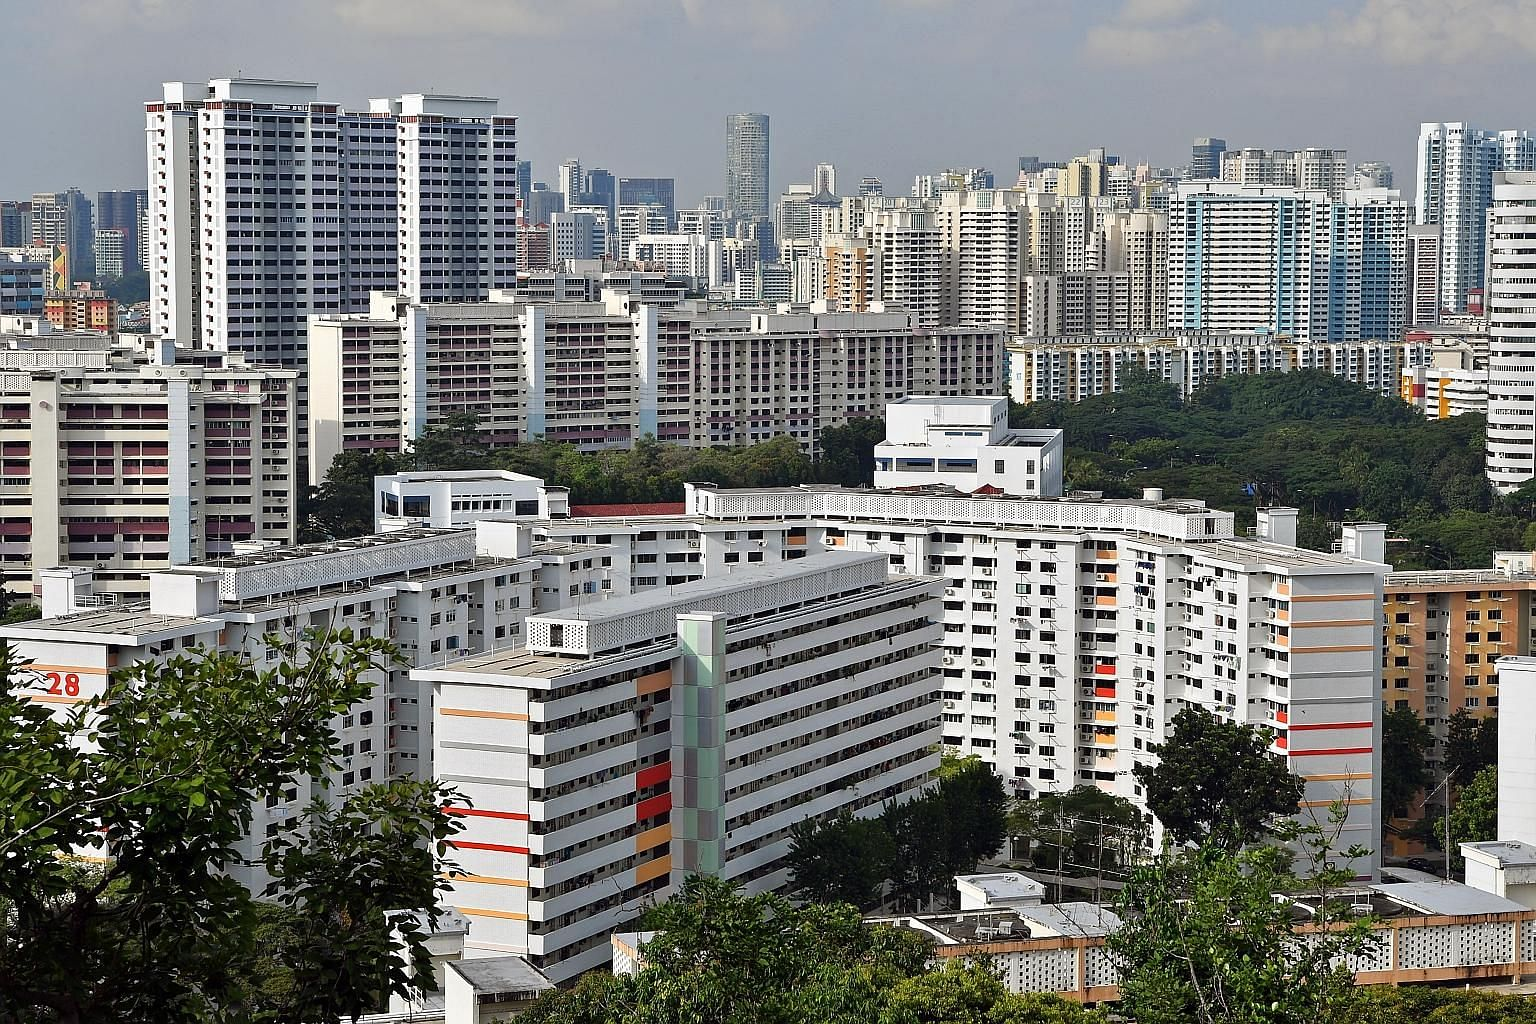 Analysts attribute the increase in sales of HDB resale flats in the third quarter to buyers coming back to the market, drawn by the soft resale prices, and former owners of properties sold in collective sales buying HDB flats as replacement homes.